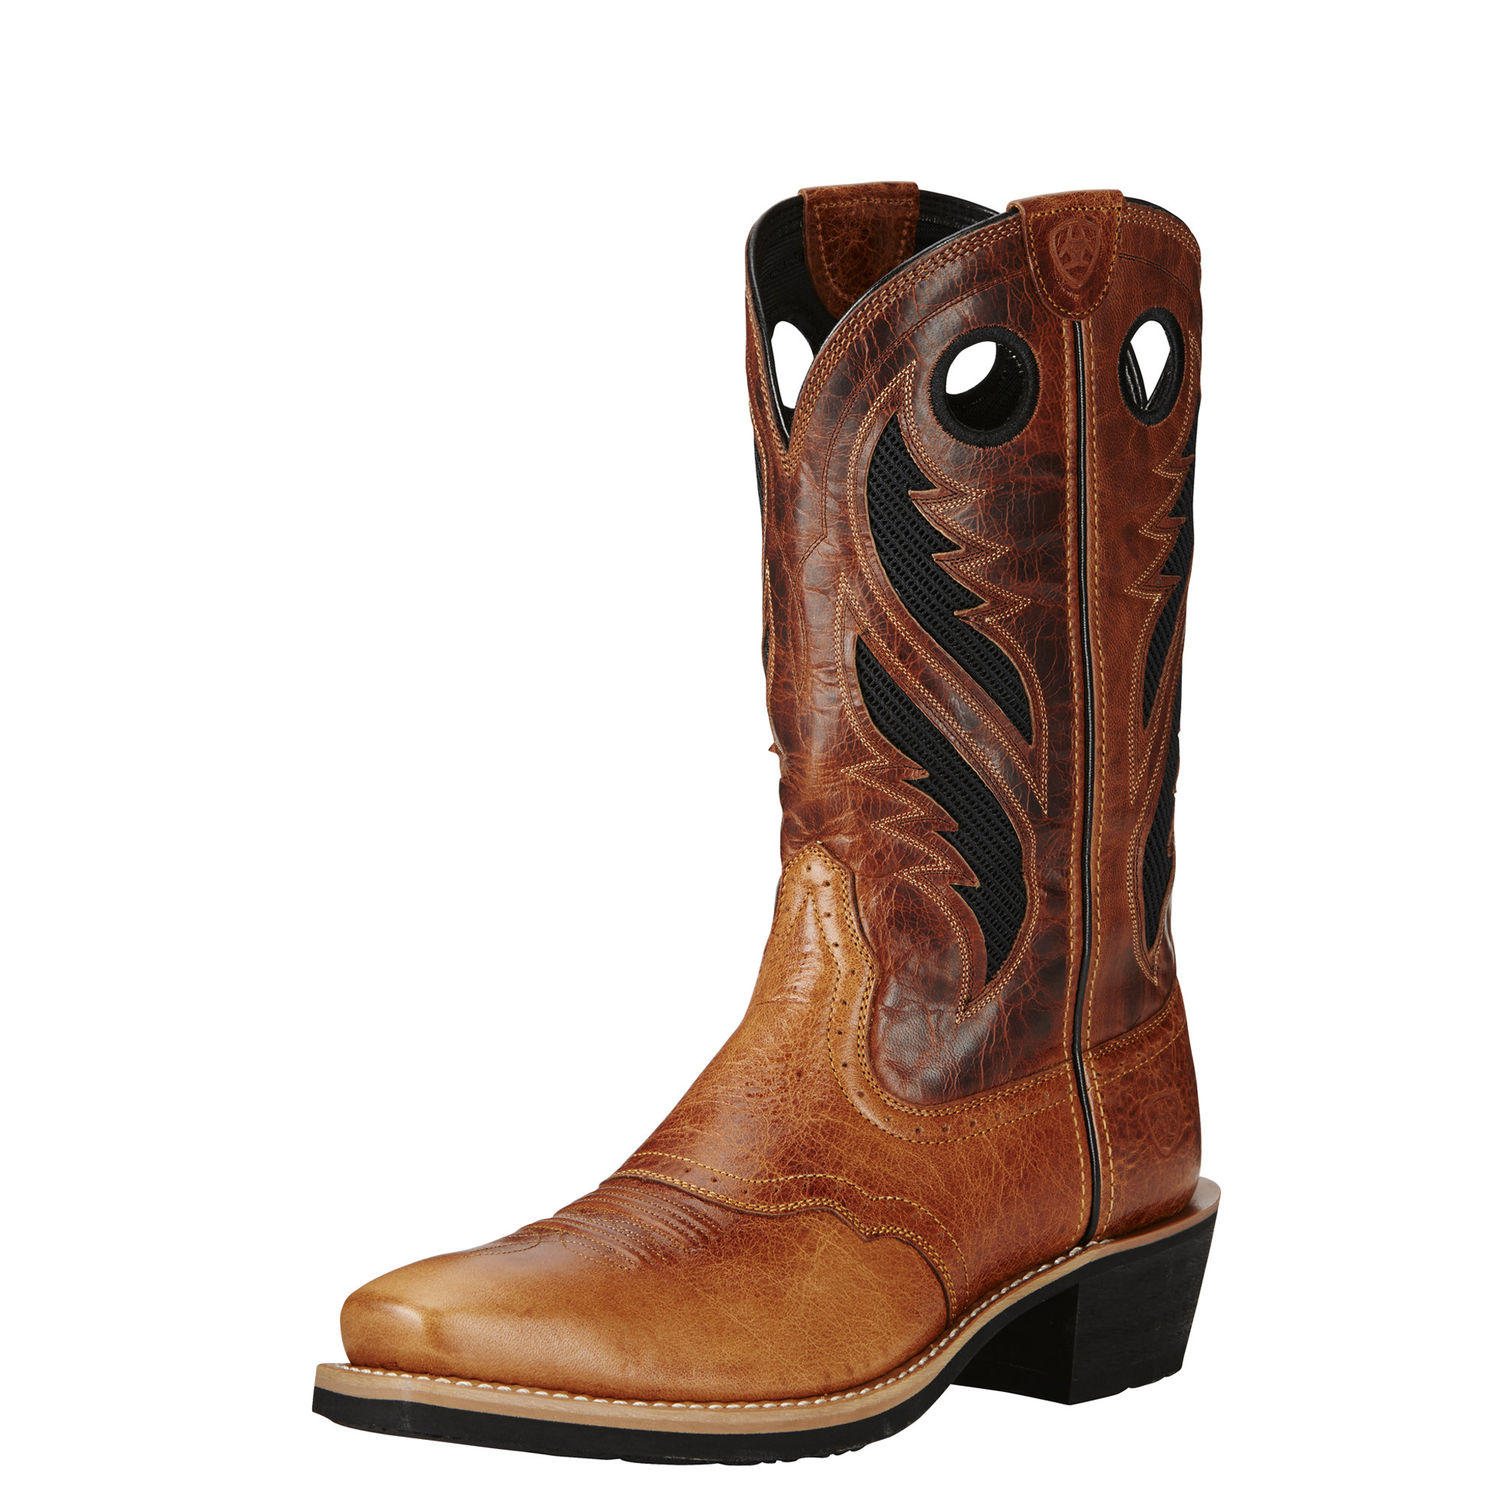 mens western riding pleasure fashion boot Heritage Roughstock Venttek STYLE # 10019980 side view